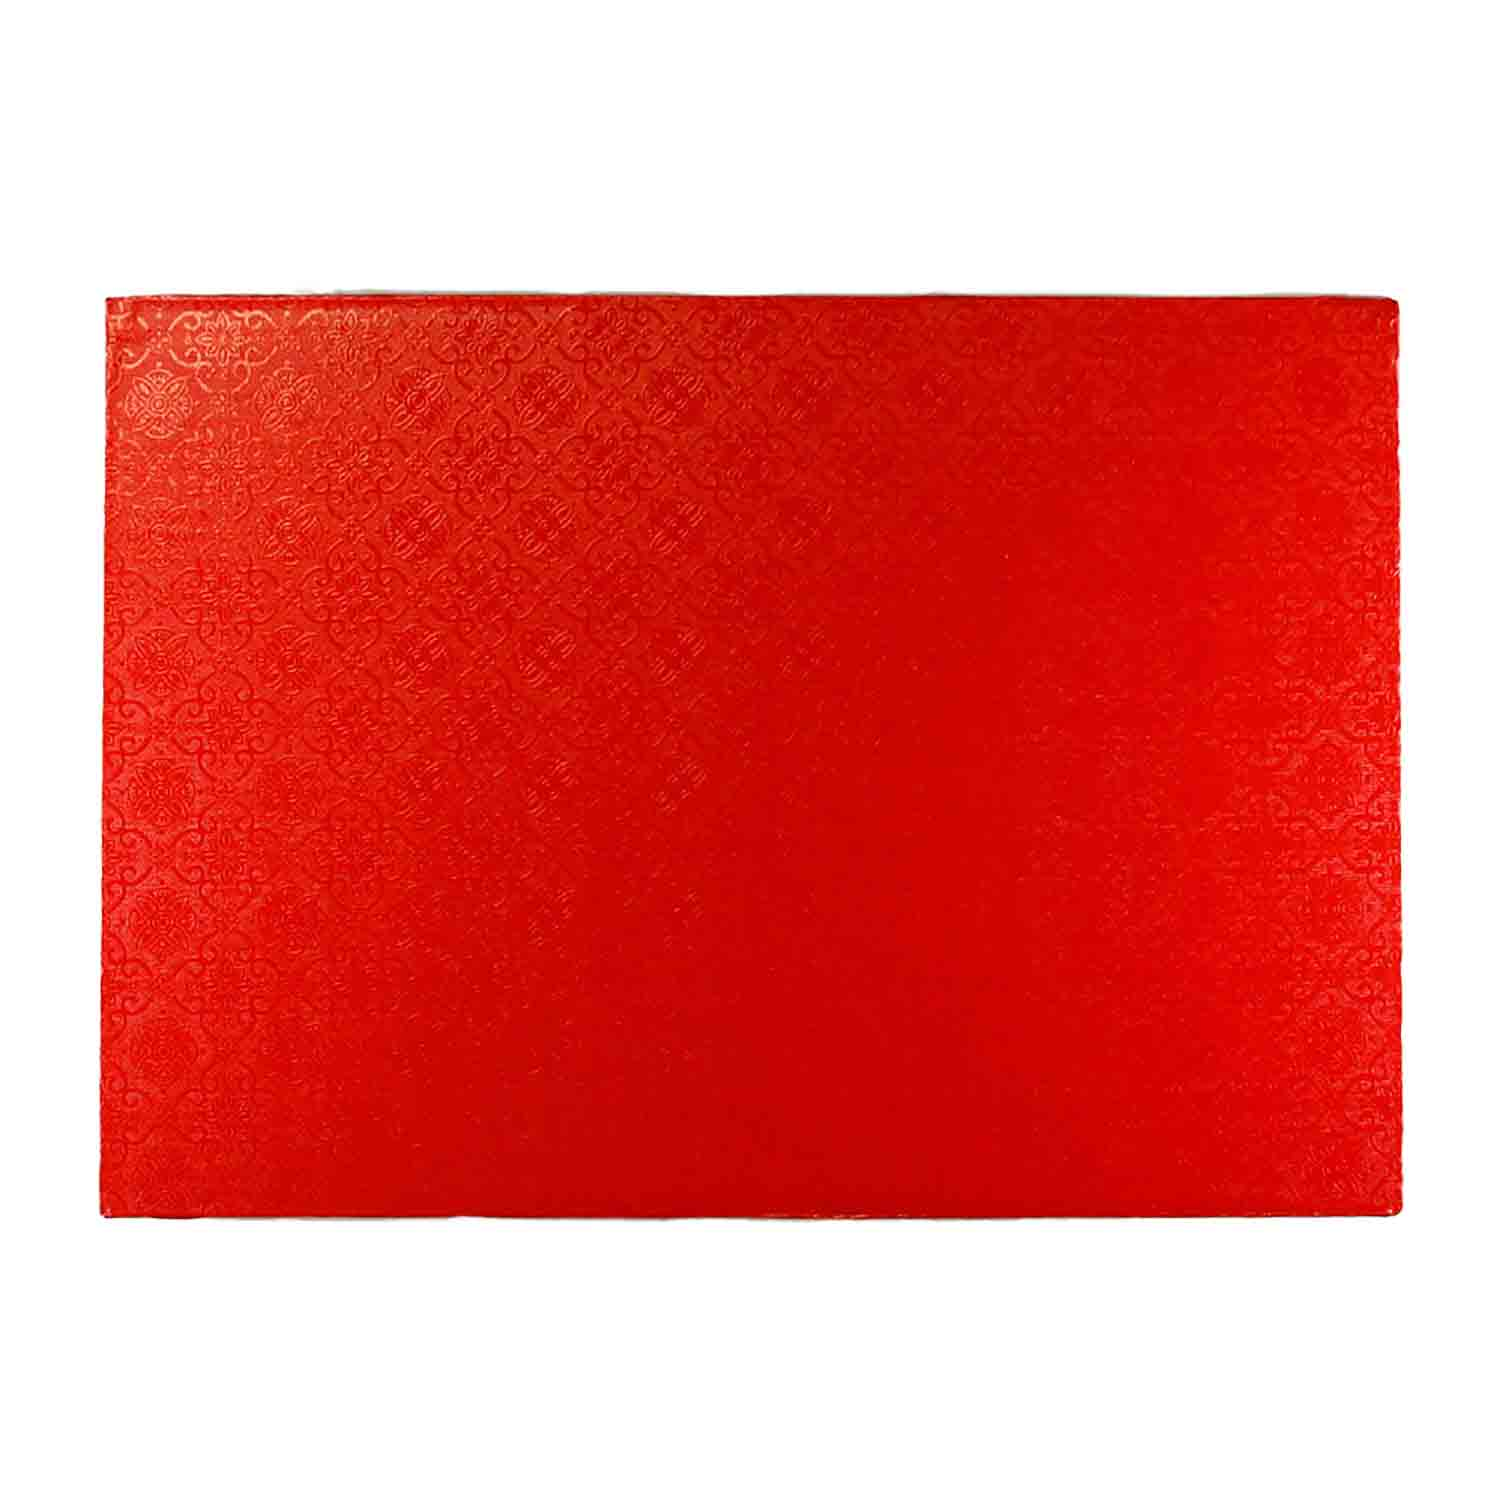 "10"" x 14"" Rectangle Red Foil Quarter Sheet Cake Drum"